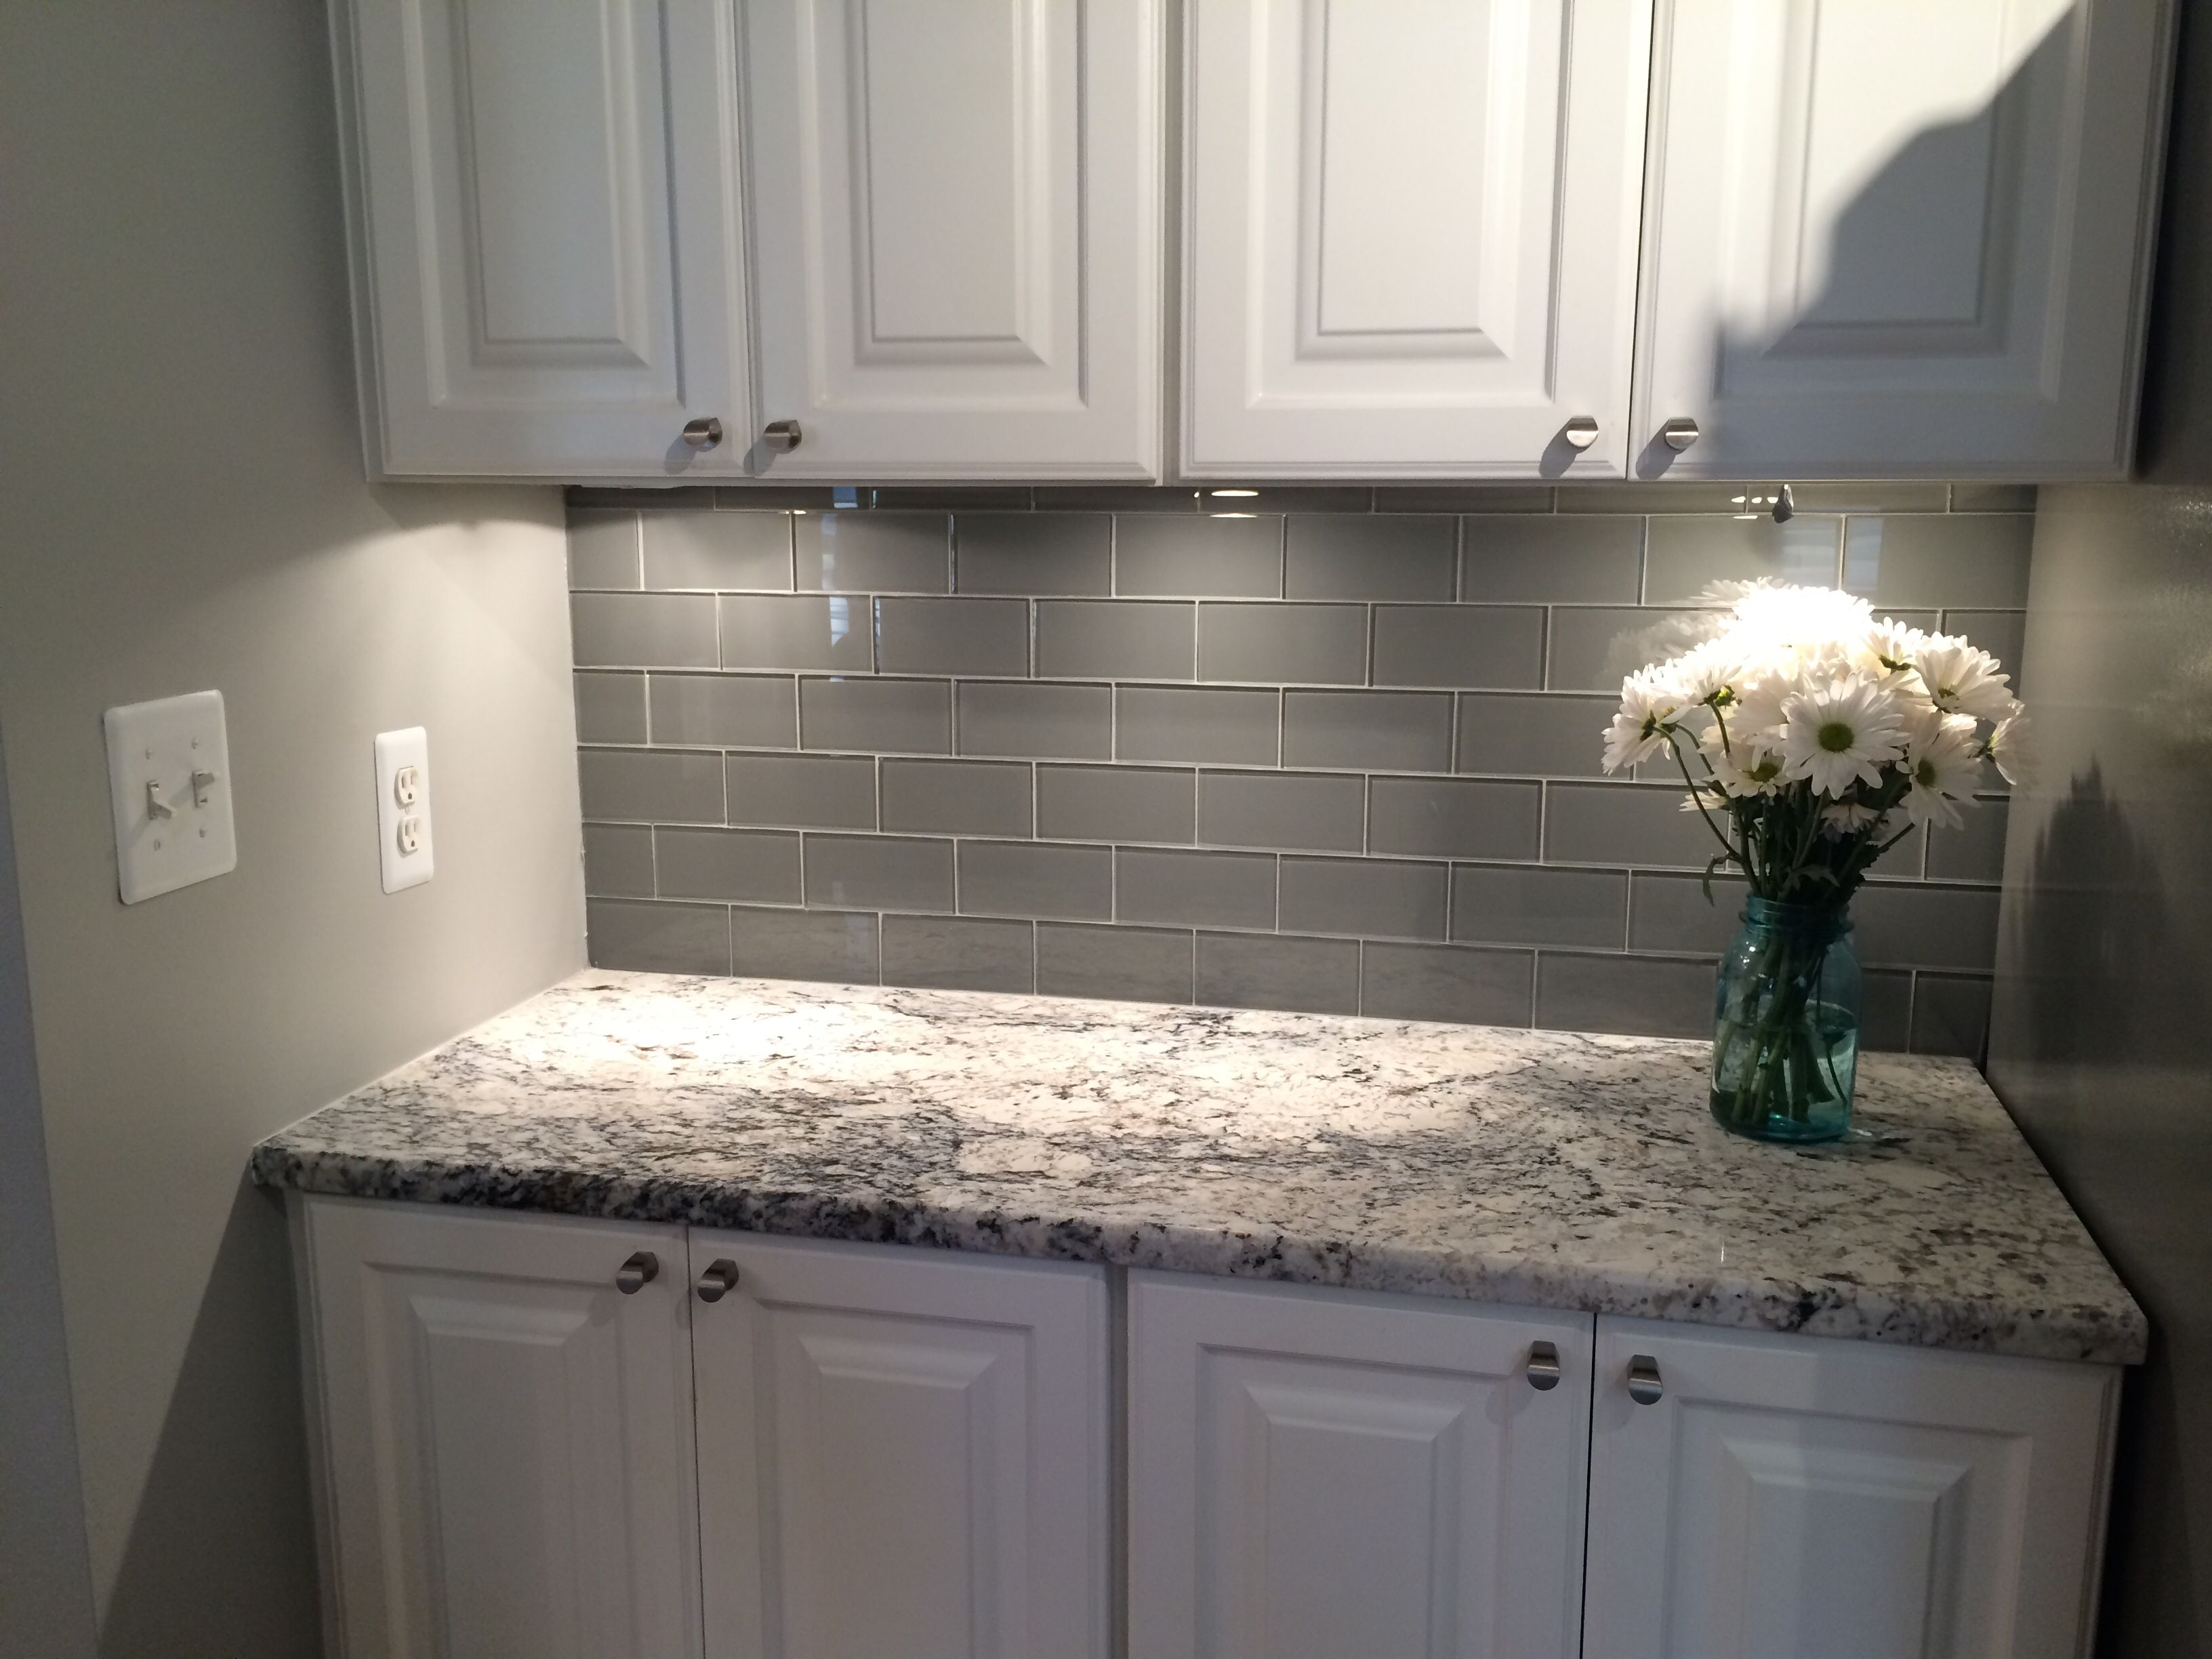 Pictures Of Backsplash In Kitchens Grey Glass Subway Tile Backsplash And White Cabinet For Small